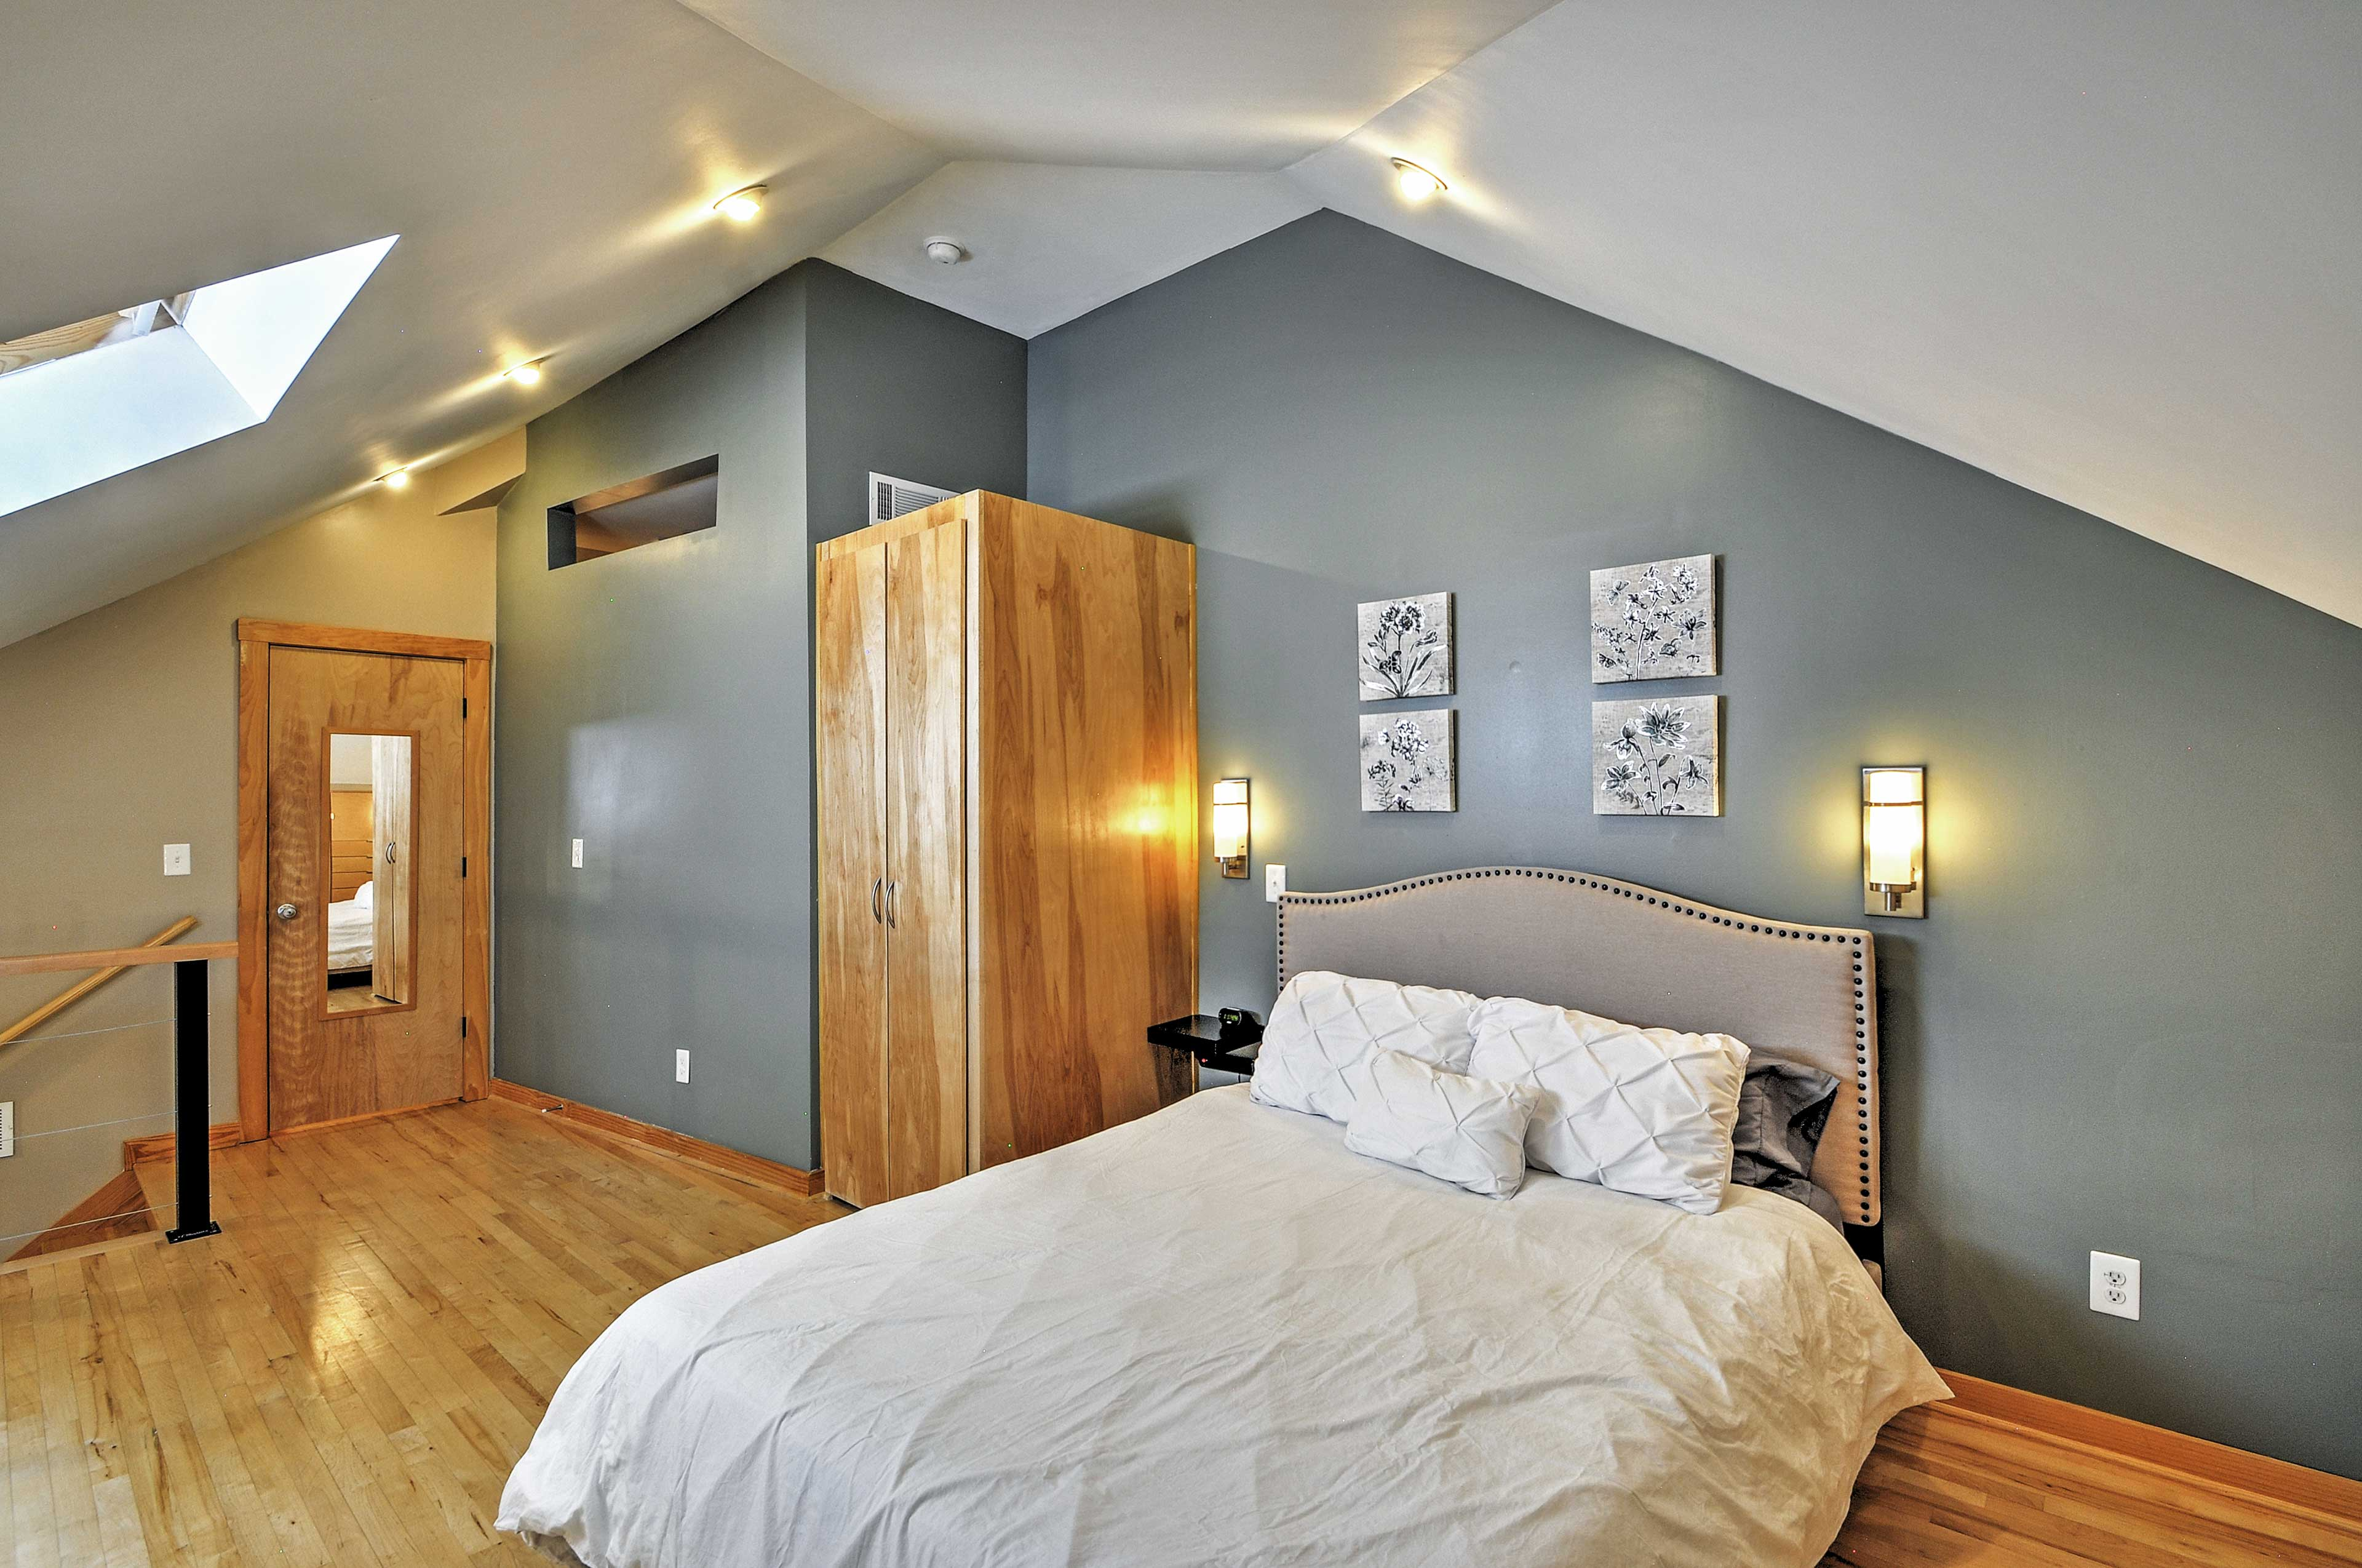 The loft features a cozy queen bed.